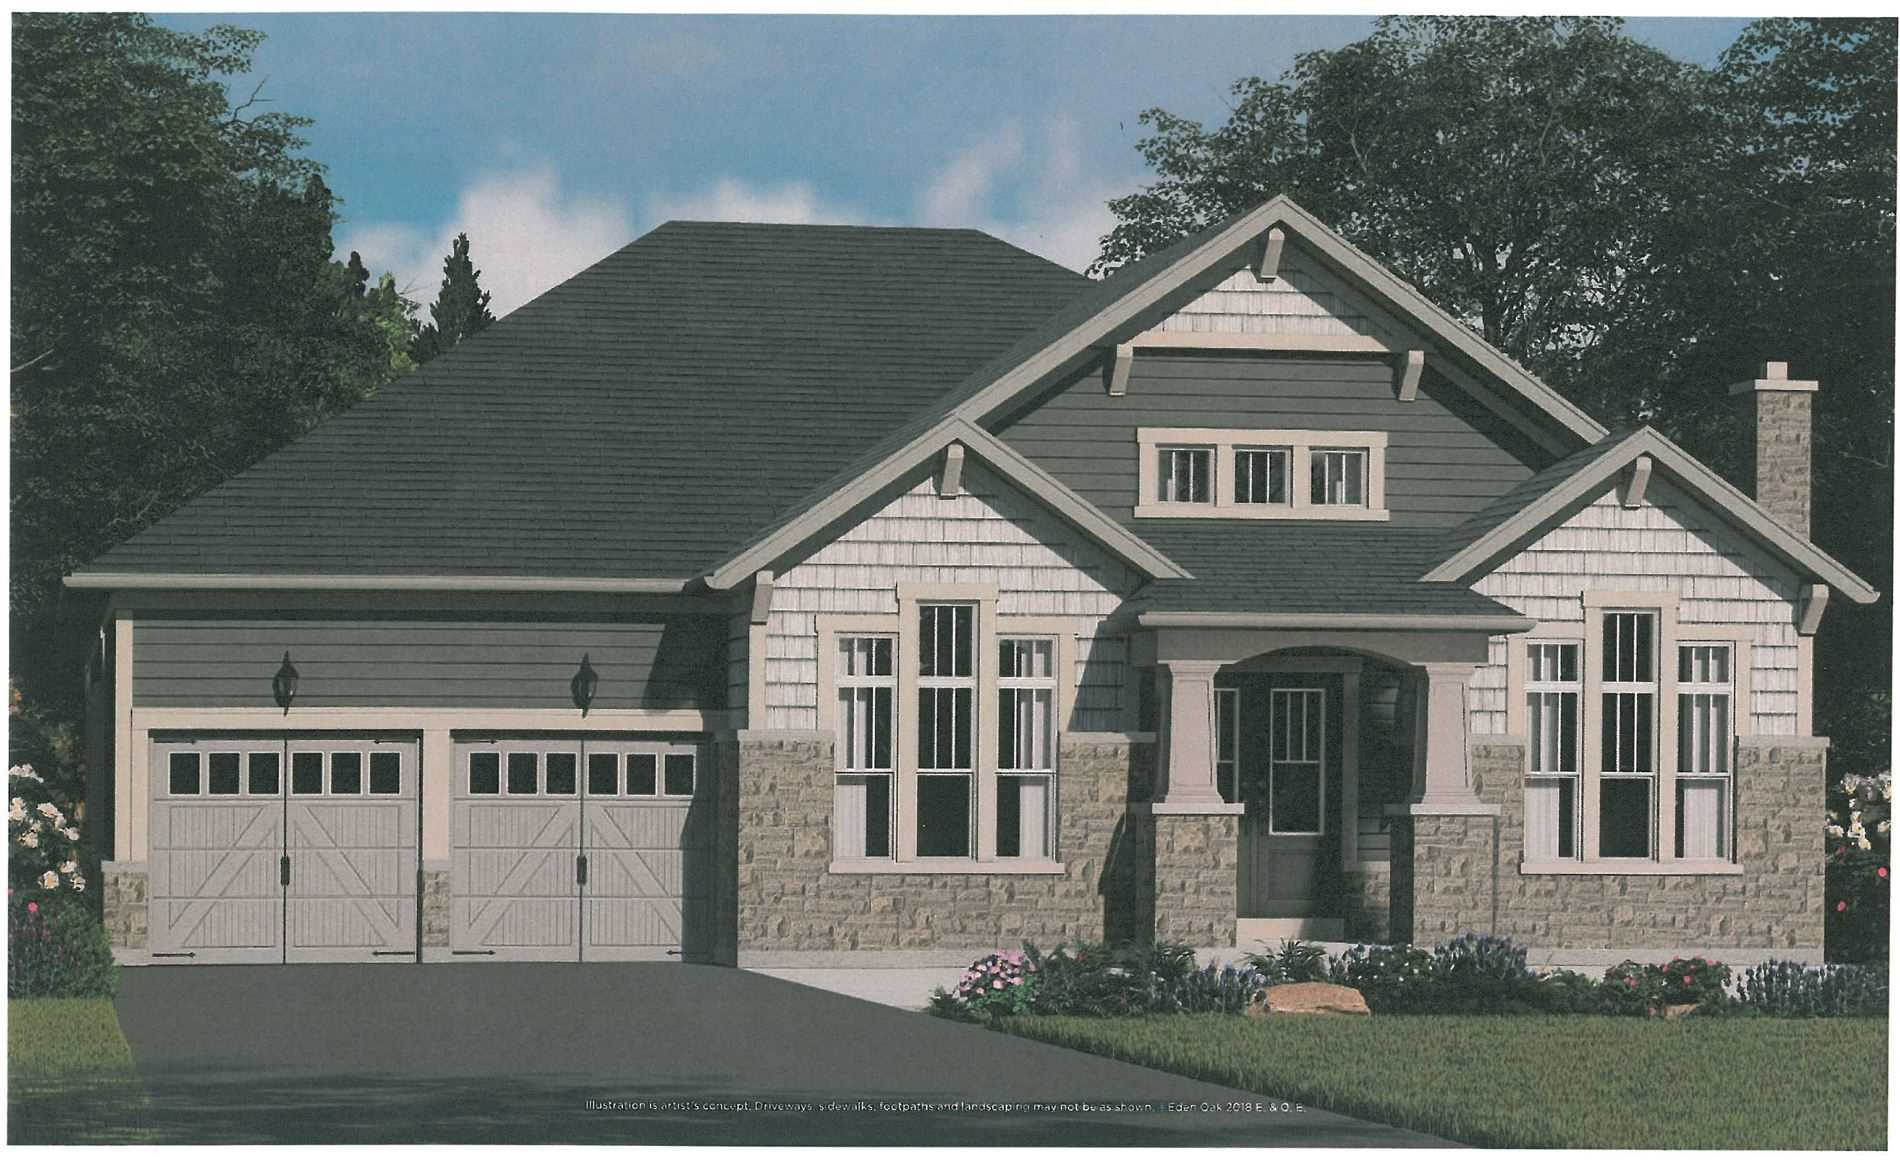 Lot 15 Jade Circ, Halton Hills, Xxxxxx, 3 Bedrooms Bedrooms, ,3 BathroomsBathrooms,Detached,For Sale,Jade,W4689843